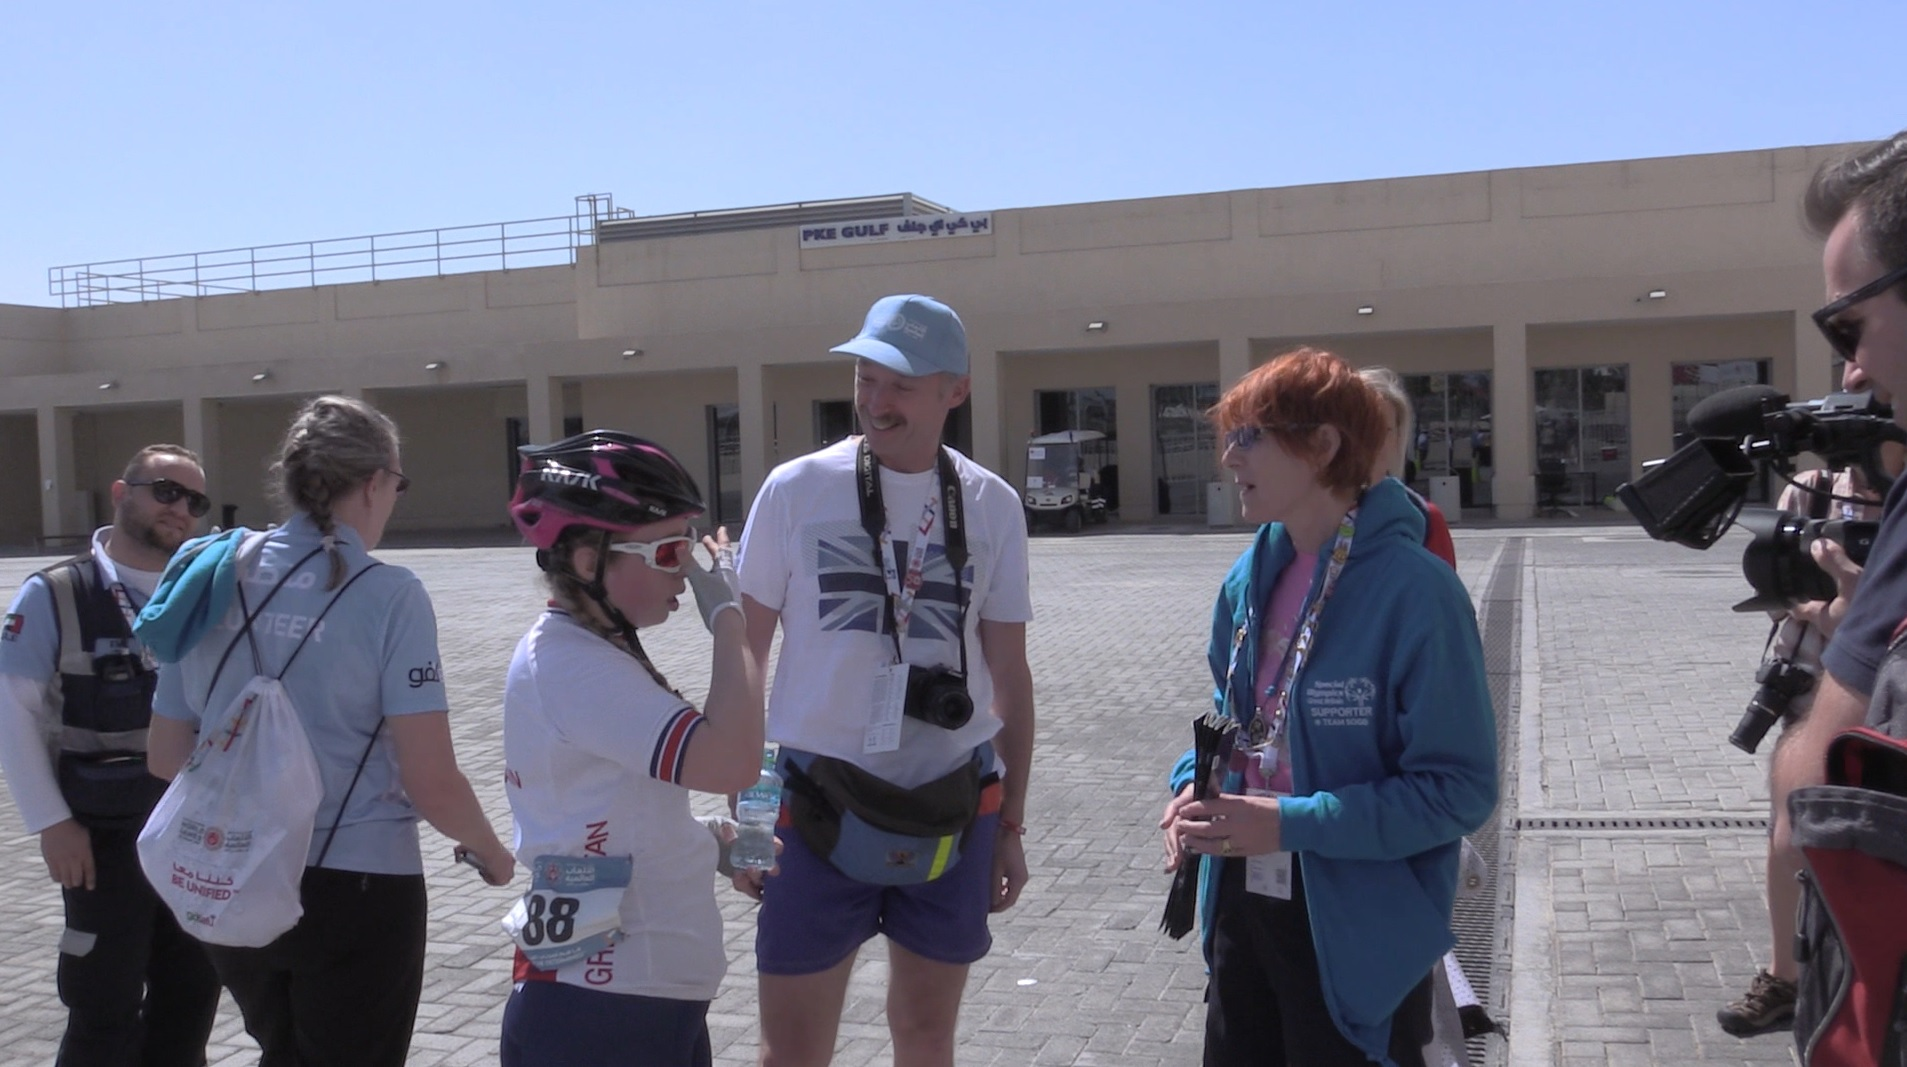 Kiera Byland talks to her parents after her final race at the 2019 World Games